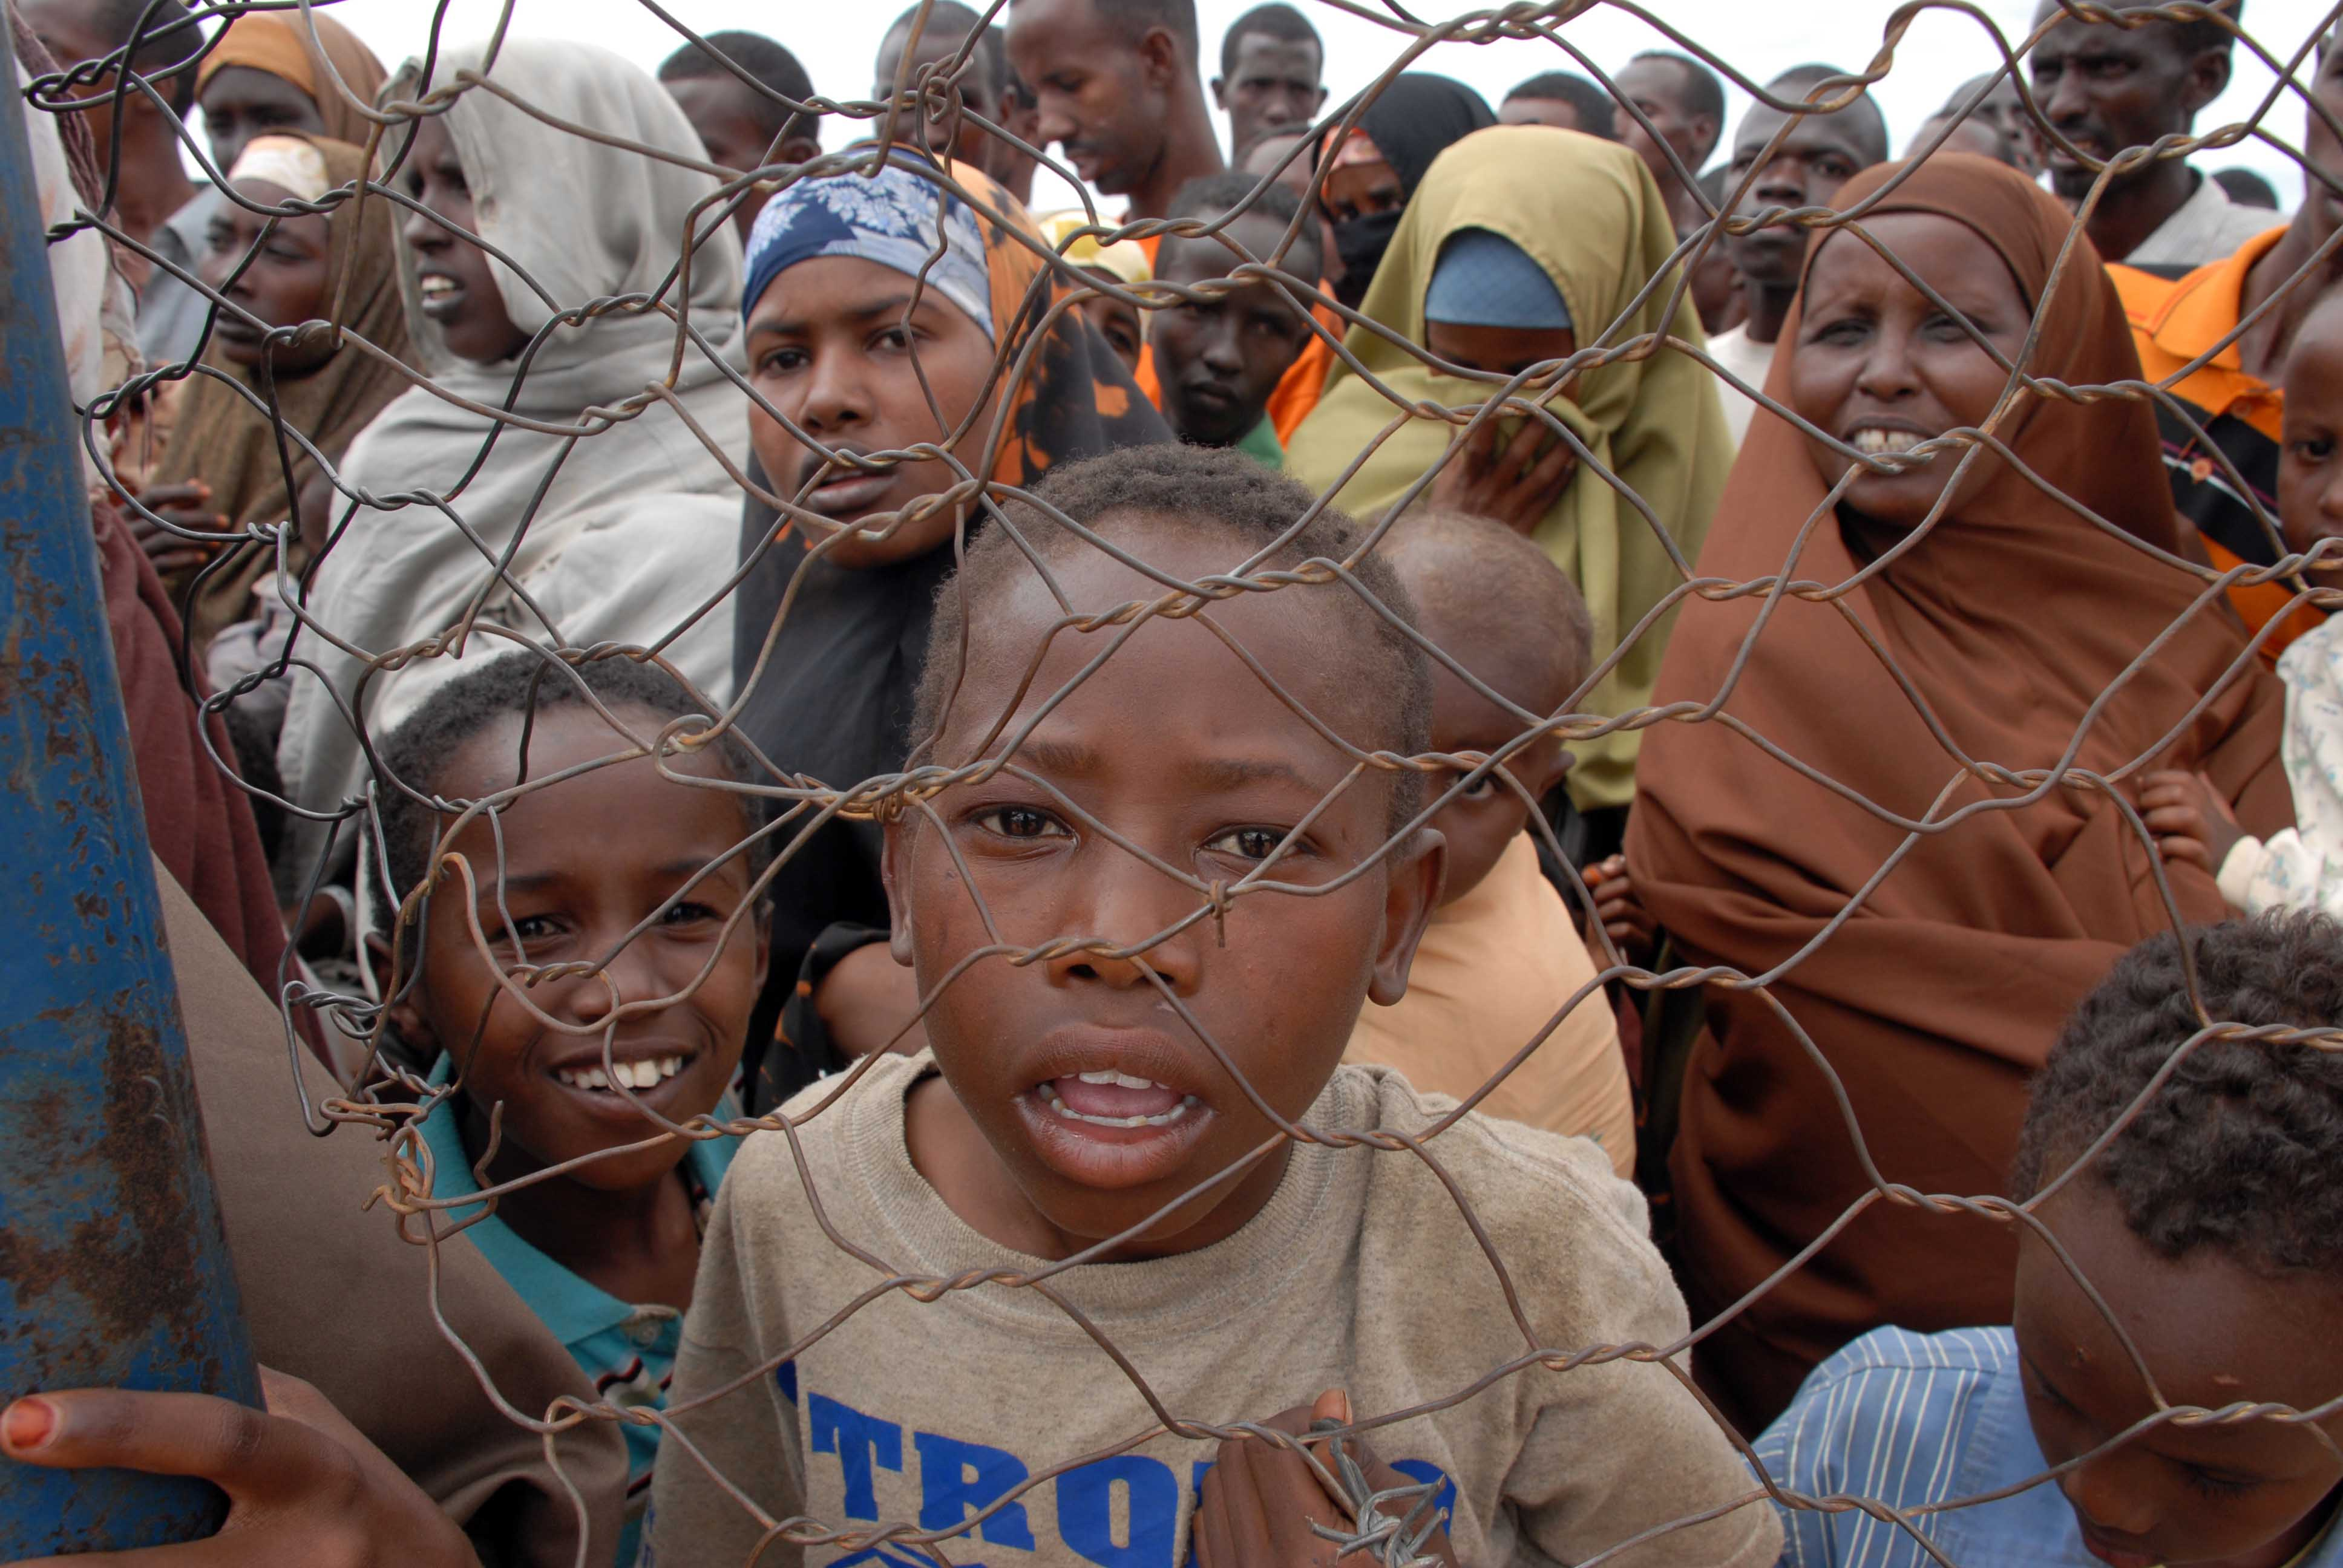 Refugees are controlled as they get into the UNHCR Dadaab camp for registration, Garissa District, Kenya August 2008.